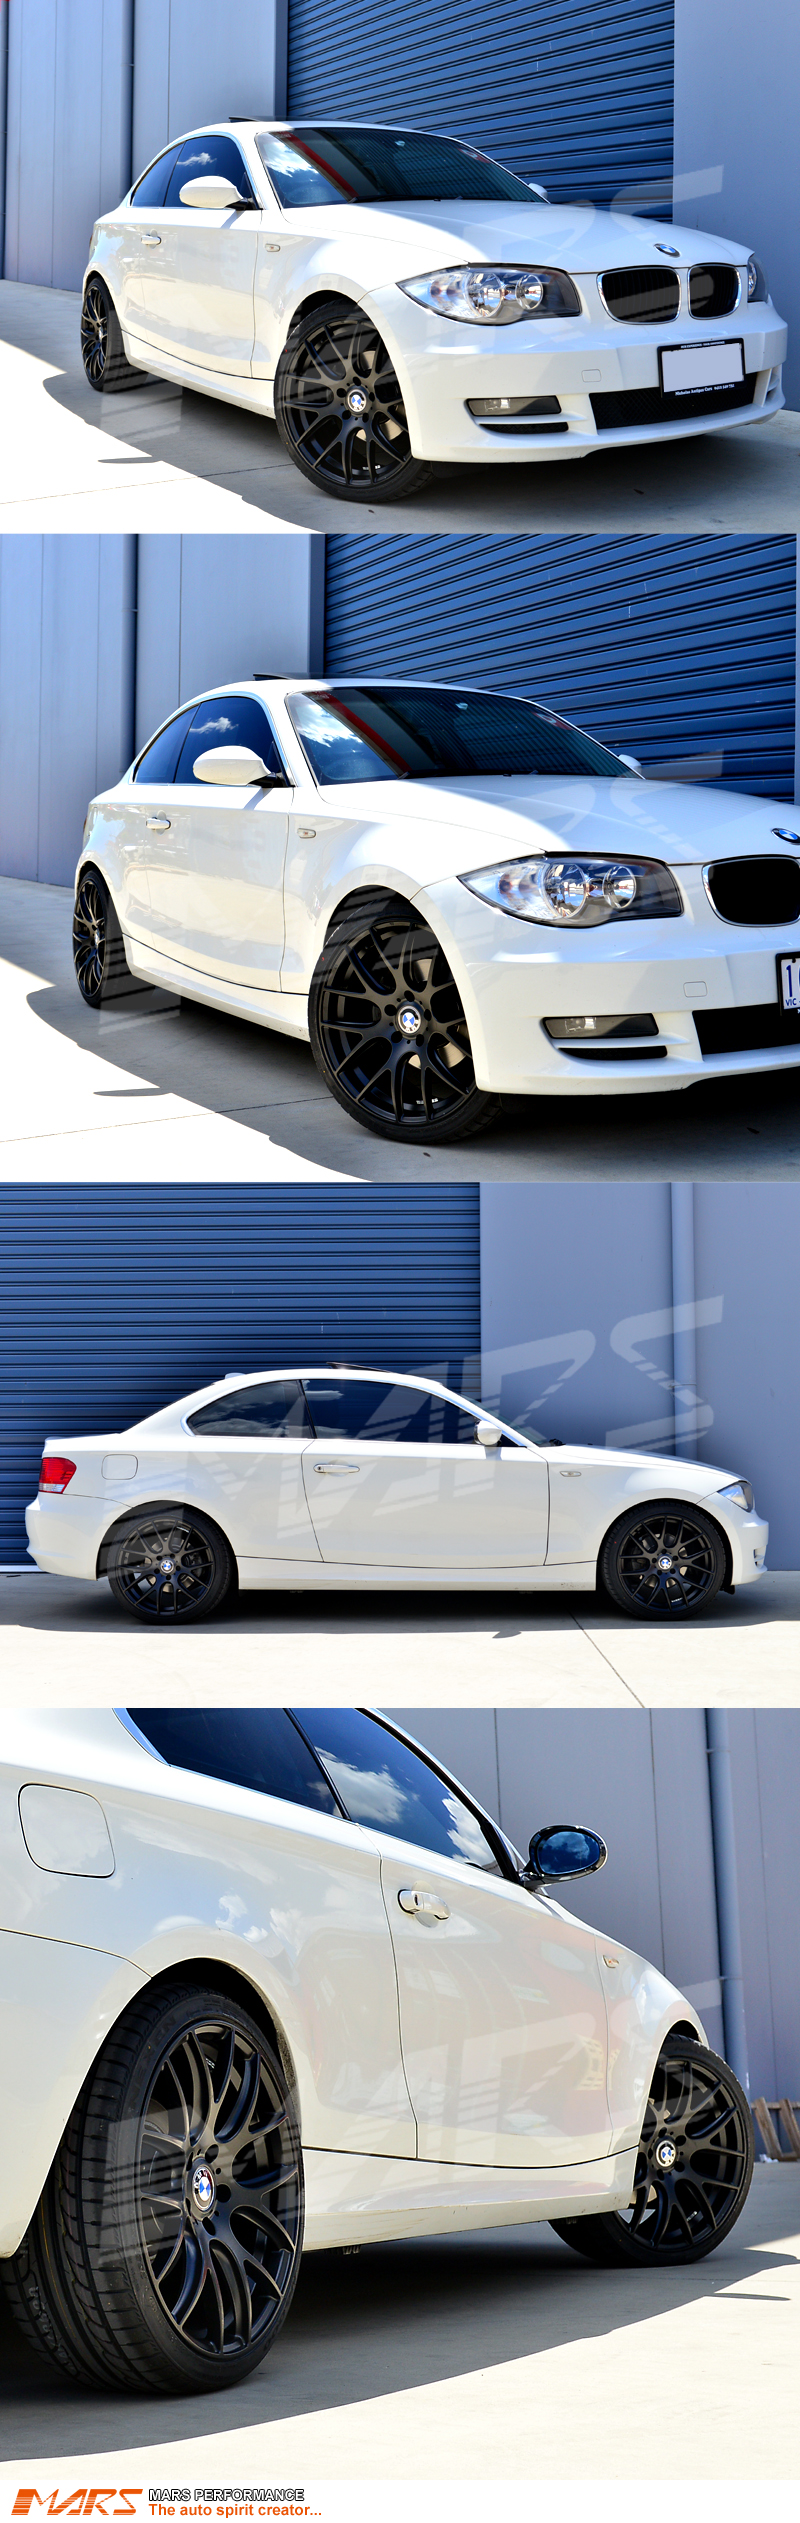 Mars Mp Jl 19 Inch Concave Stag Wheels Rims For Holden Hsv